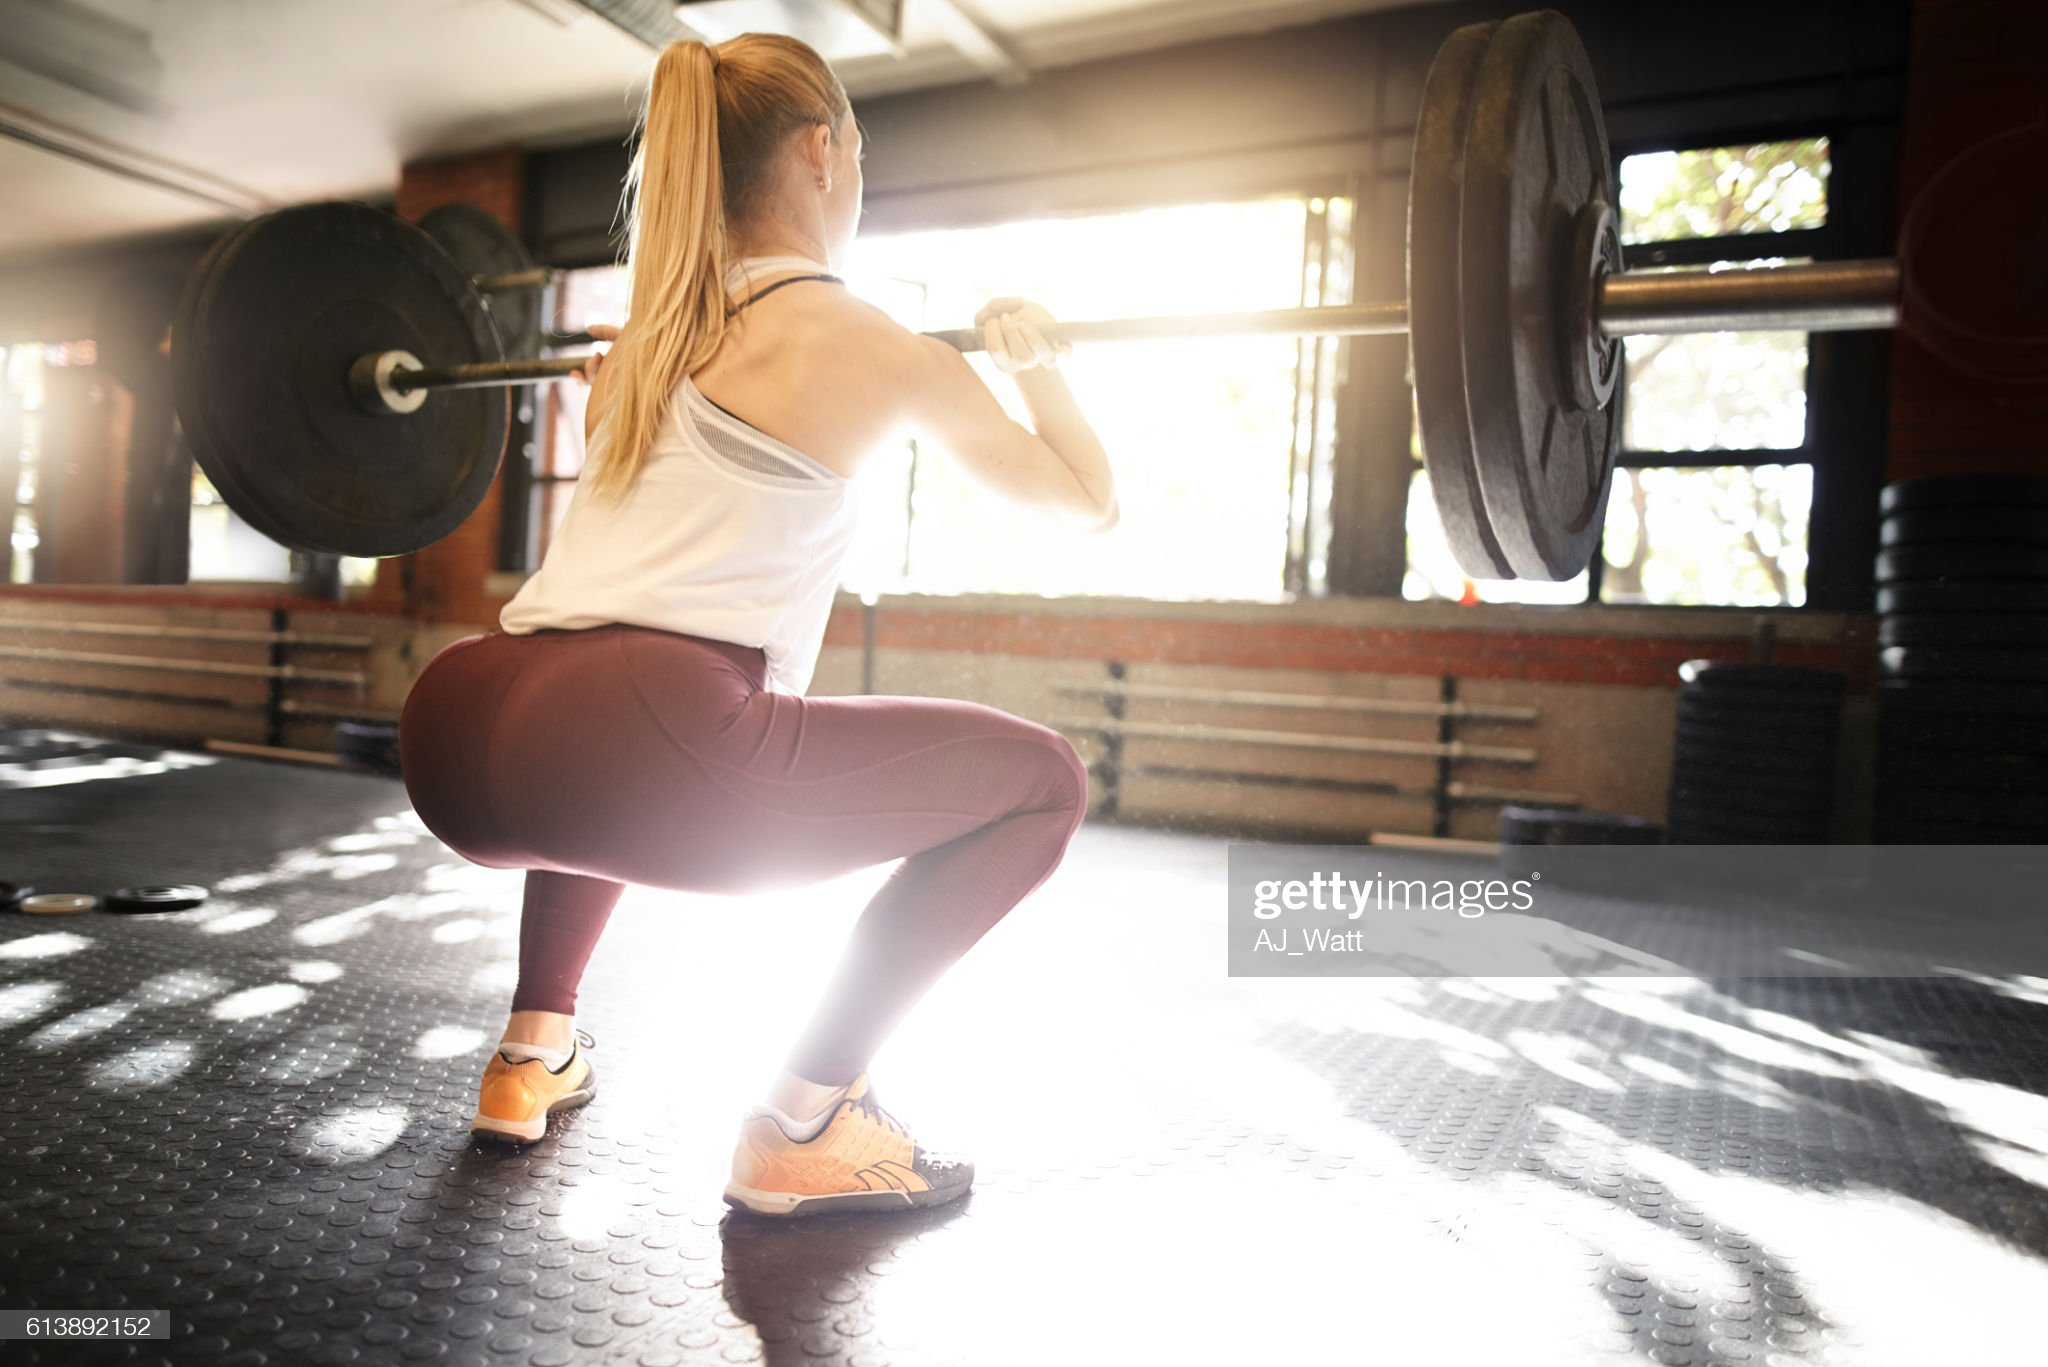 Keeping her glutes tightened and toned : Stock Photo